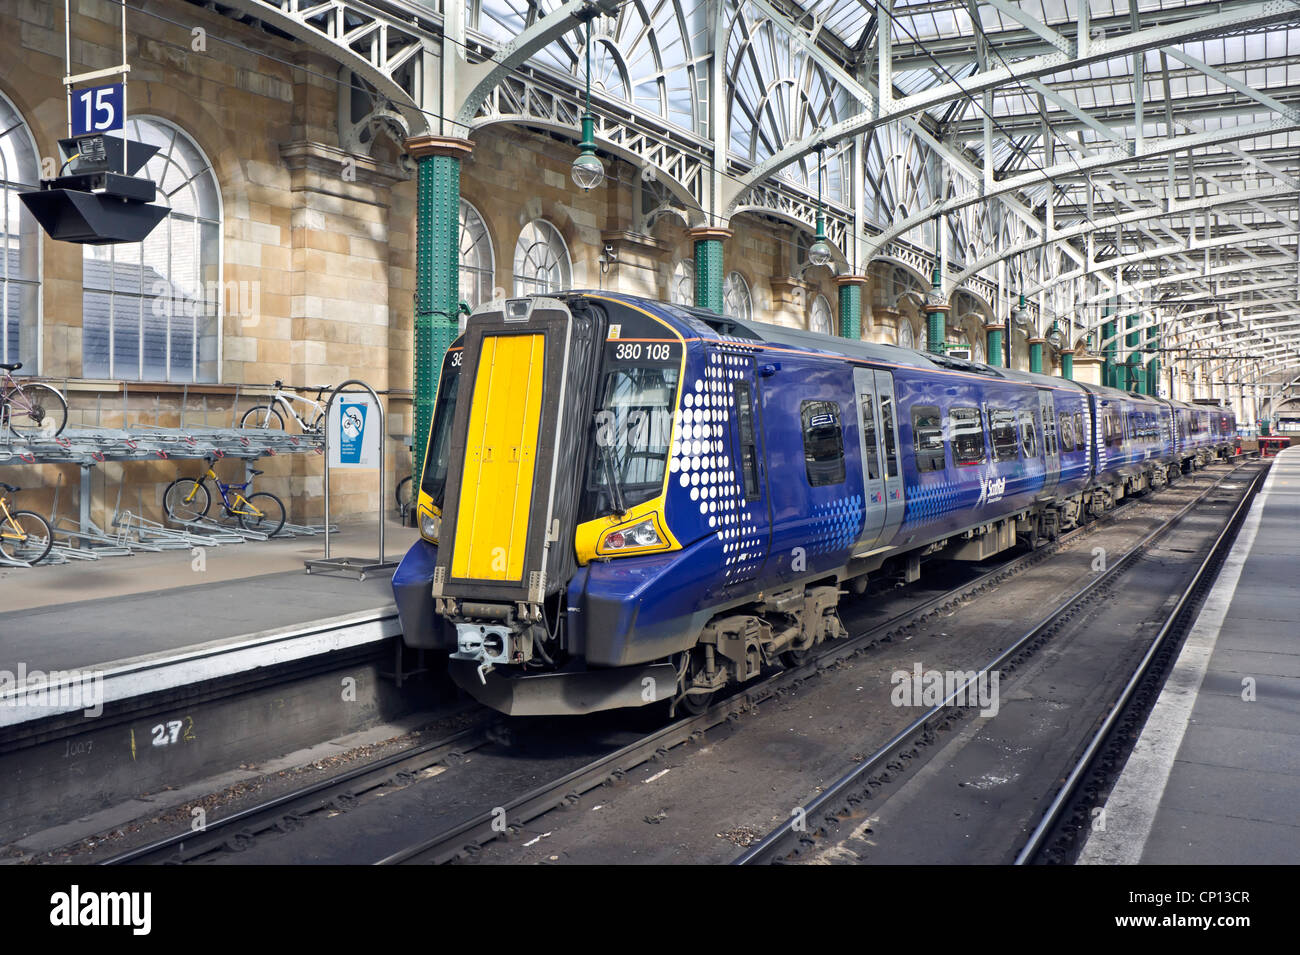 New Scotrail Class 380 EMU in Glasgow Central Station at platform 15 - Stock Image